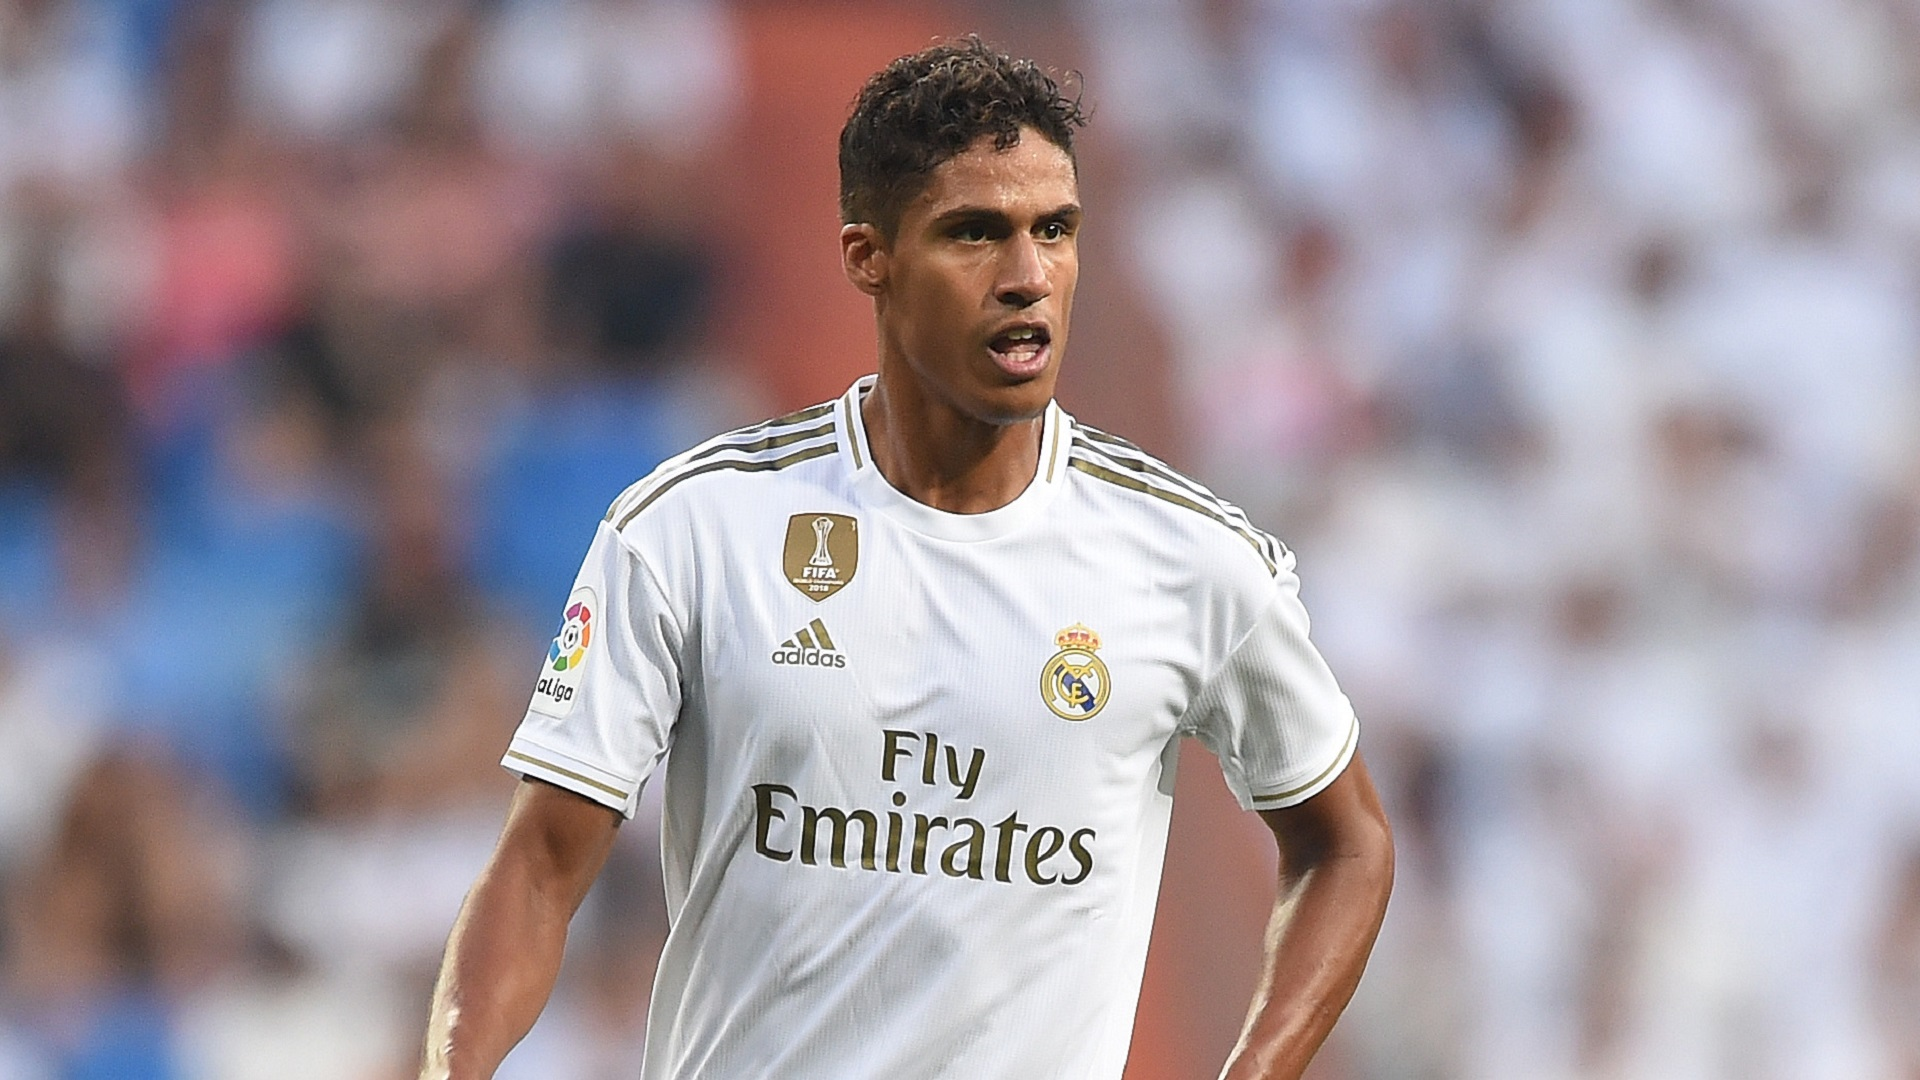 Bayern said €5m was too much' - Sagnol reveals how German giants lost out  to Real Madrid in Varane pursuit | Goal.com